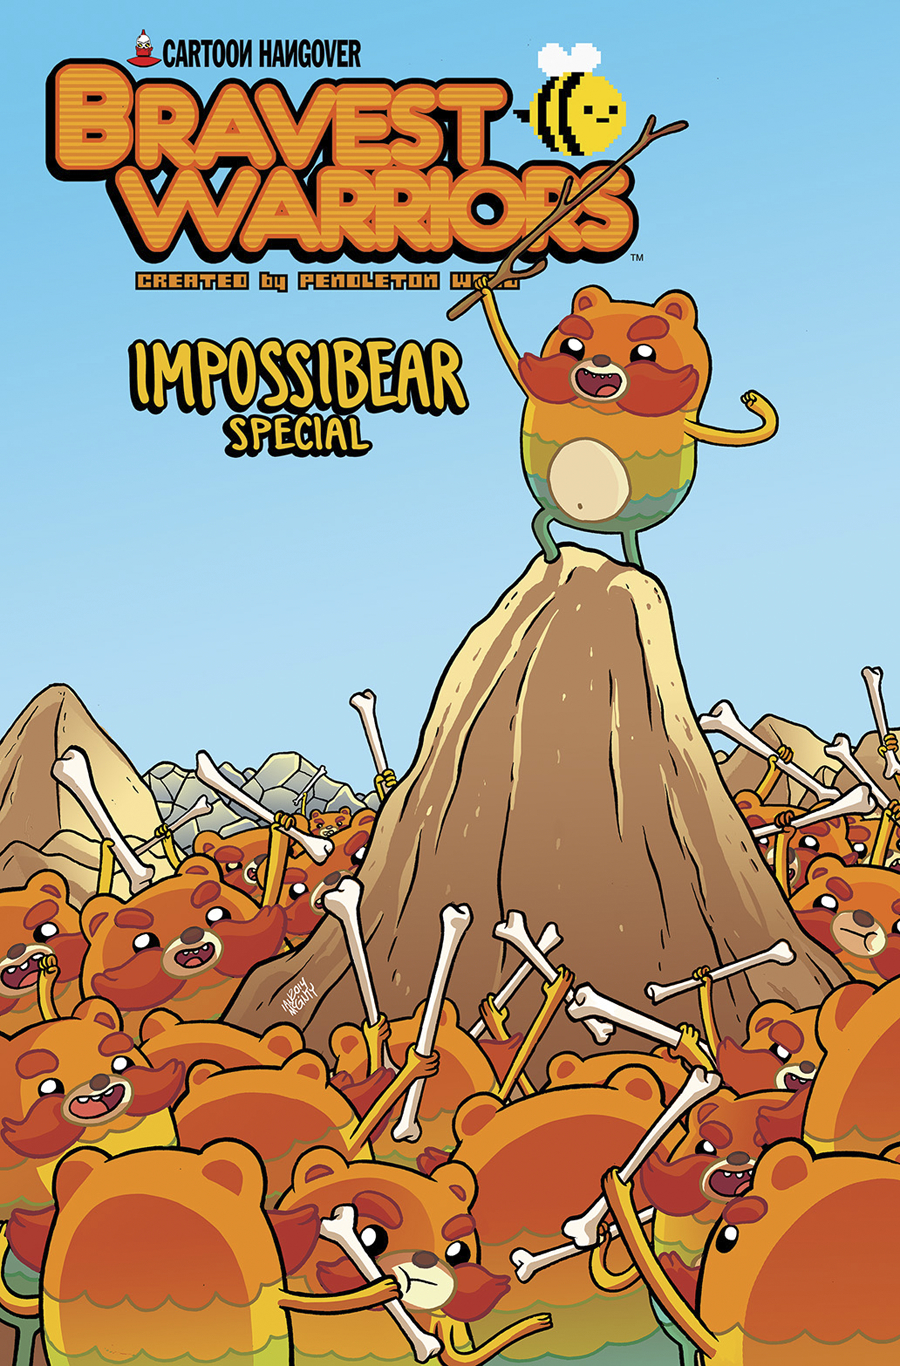 BRAVEST WARRIORS 2014 IMPOSSIBEAR SPECIAL #1